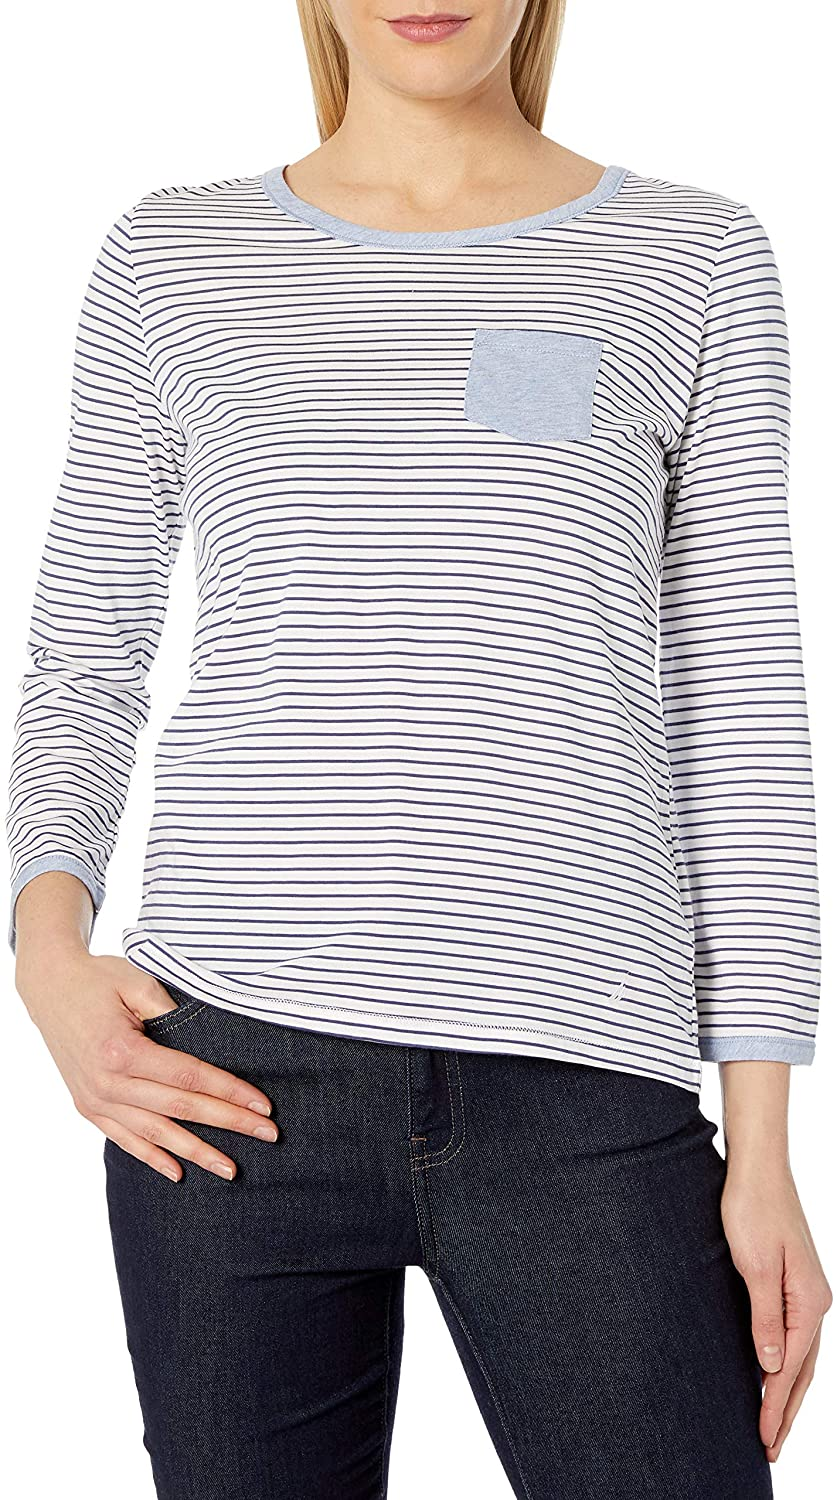 Nautica Women's Knit Lounge Striped Top